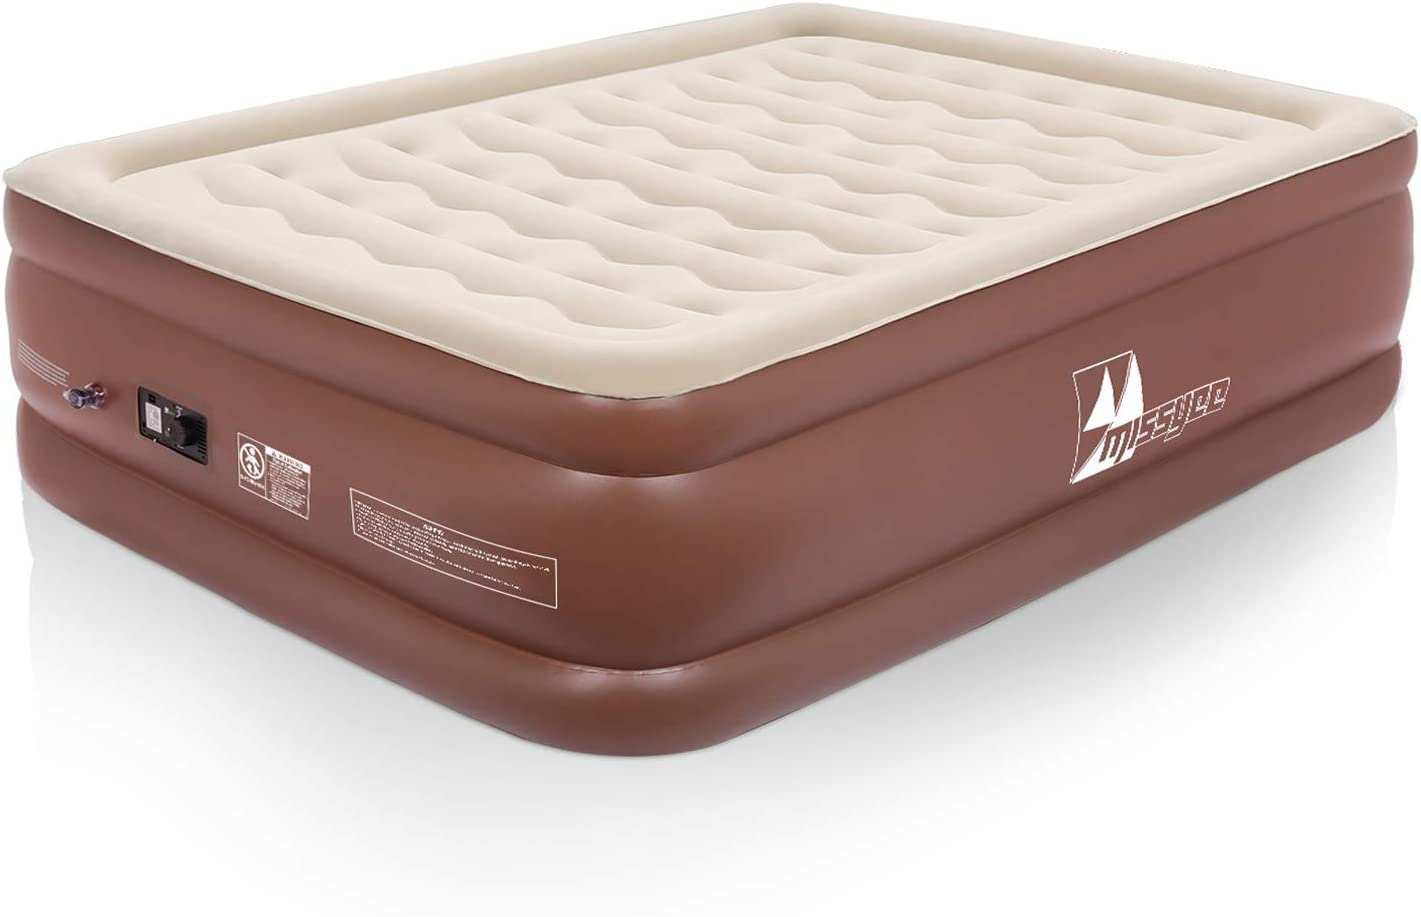 365 Night Home Trial 22 inches Height Inflatable Mattress Beds Queen with Strong Support Durable ERGOCOIL Chamber Air Mattress with Built-in Pump Queen Size 150W Easy to Inflate Storage Bag